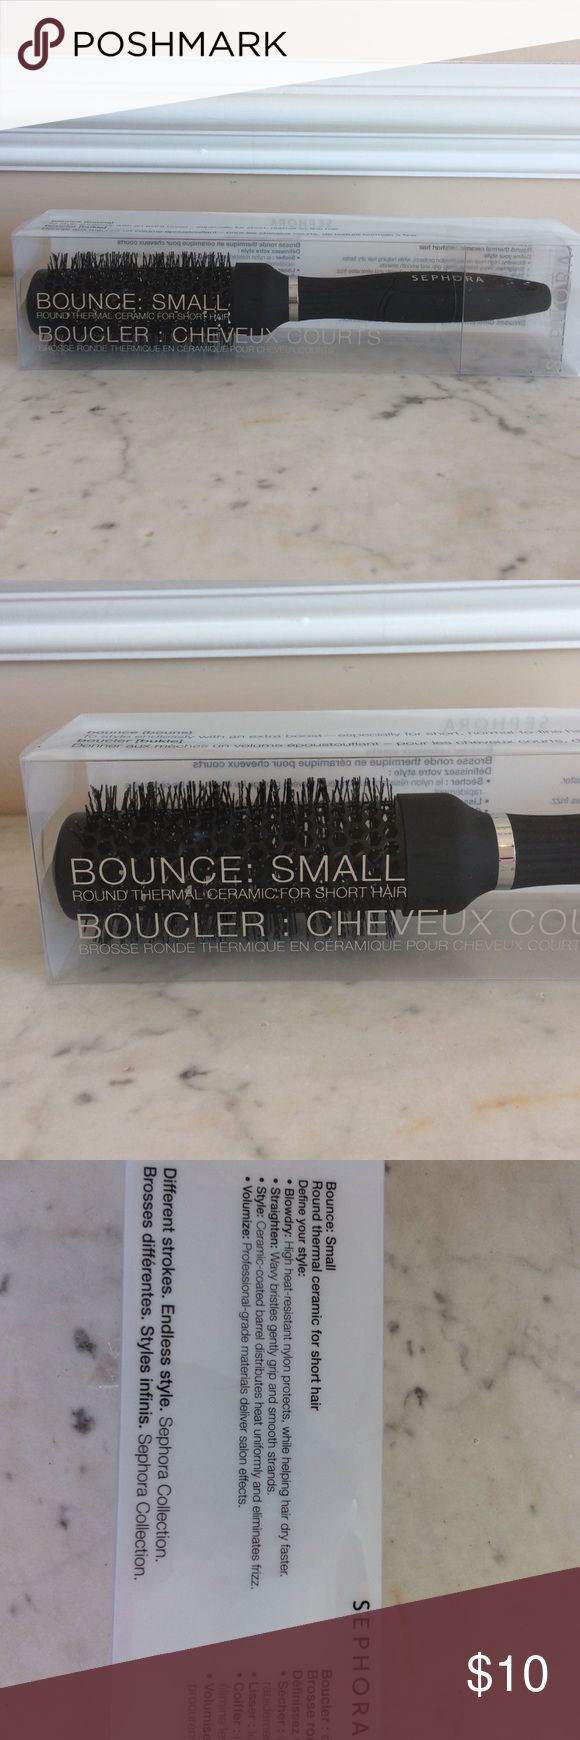 Sephora Bounce:Small Round Thermal Ceramic Brush Sephora Bounce:Small Round Thermal Ceramic Brush for short hair. New, never used. Sephora Other